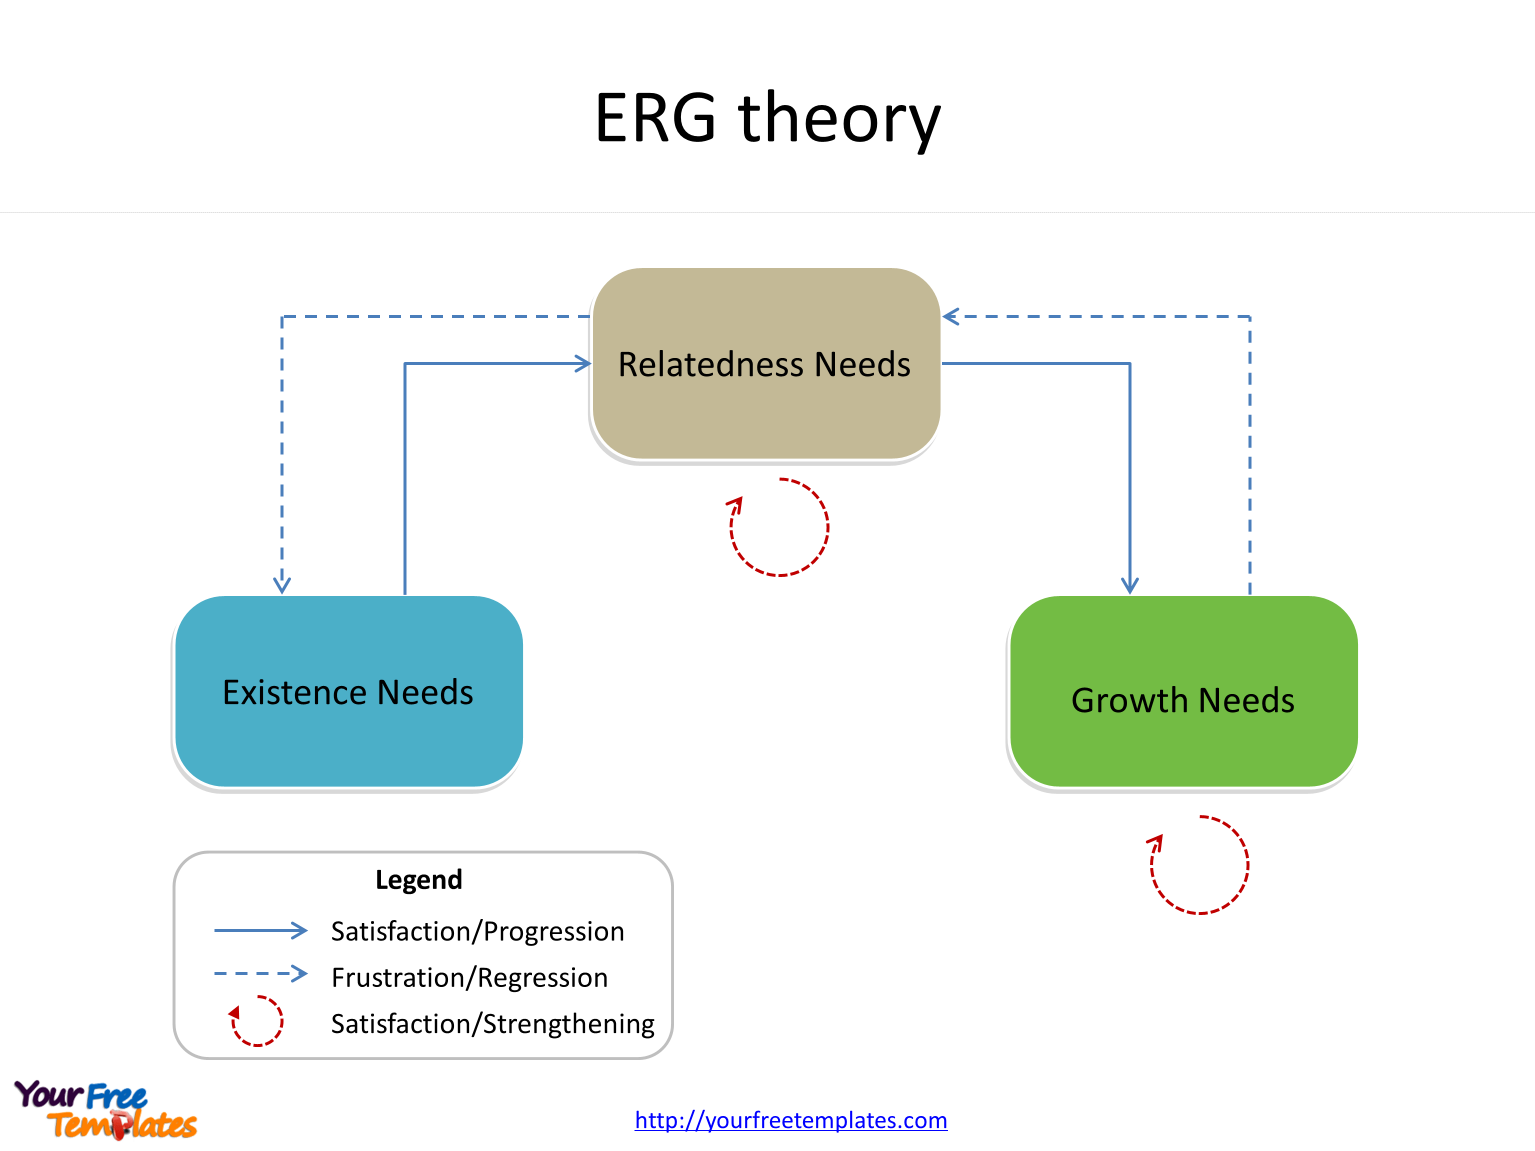 ERG theory of three levels